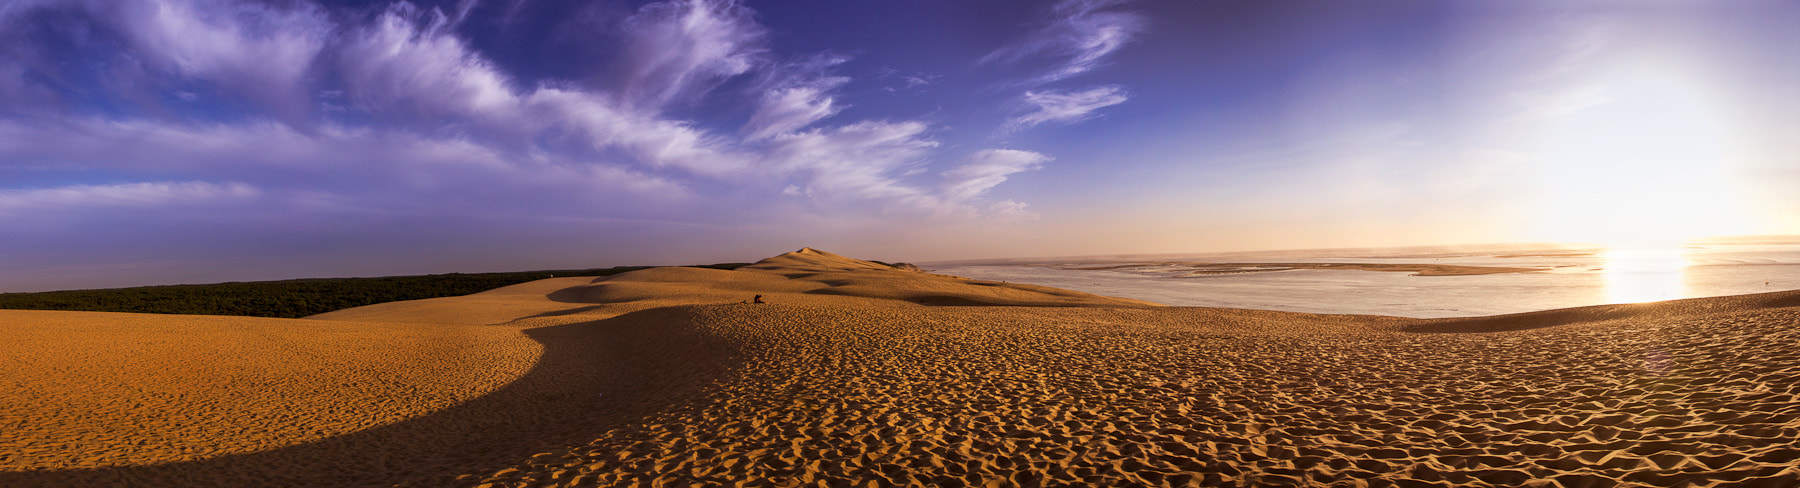 Photograph Dune of the Pilat by Ramelli Serge on 500px